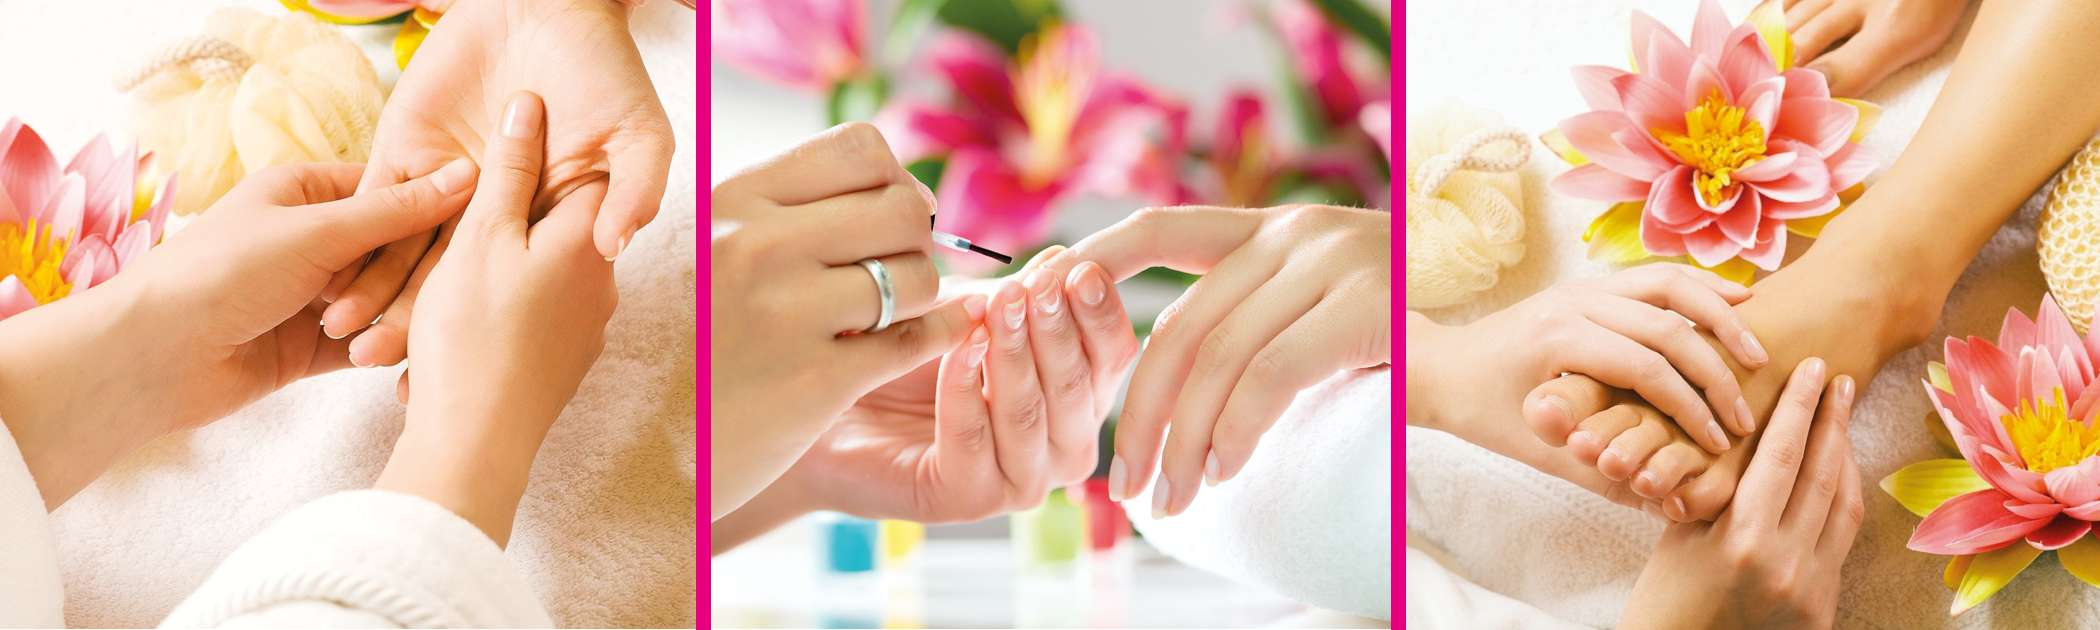 Nail And Foot Relaxing Care